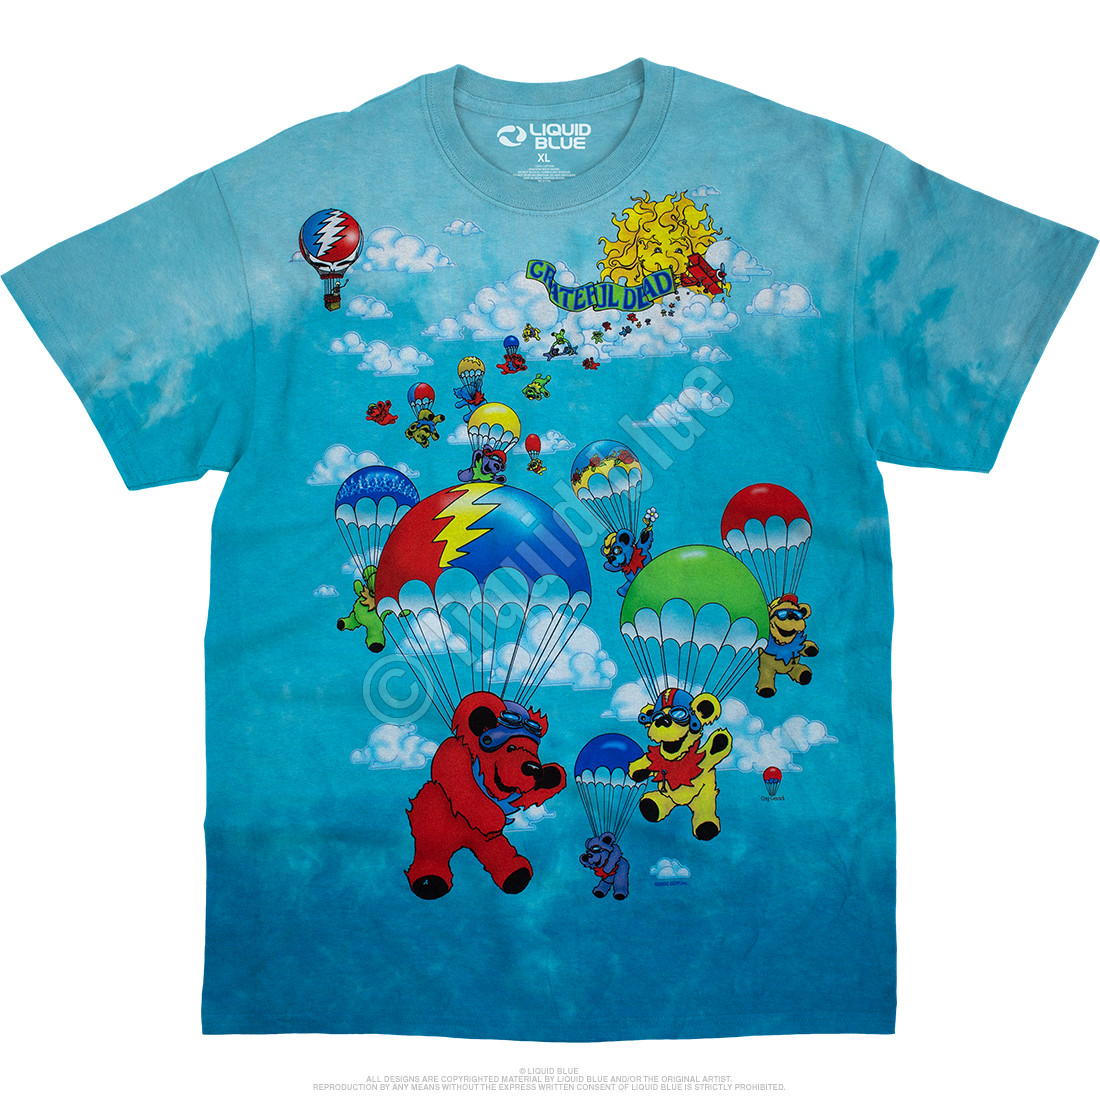 Parachuting Bears Tie-Dye T-Shirt